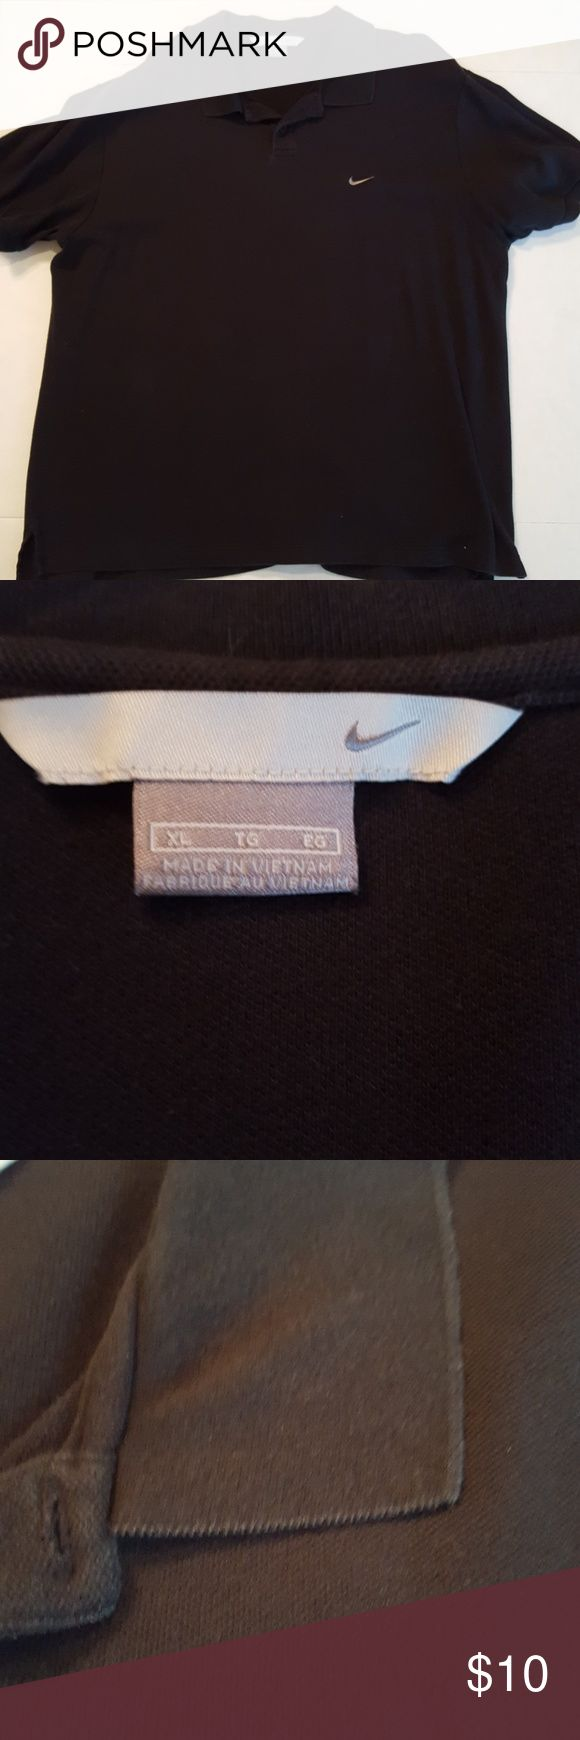 Men's 2 button black Nike Polo Men's black Nike polo shirt with two buttons. White embroidered Nike swoosh on left chest and black NIKE embroidered on left sleeve. Used condition. Nike Shirts Polos